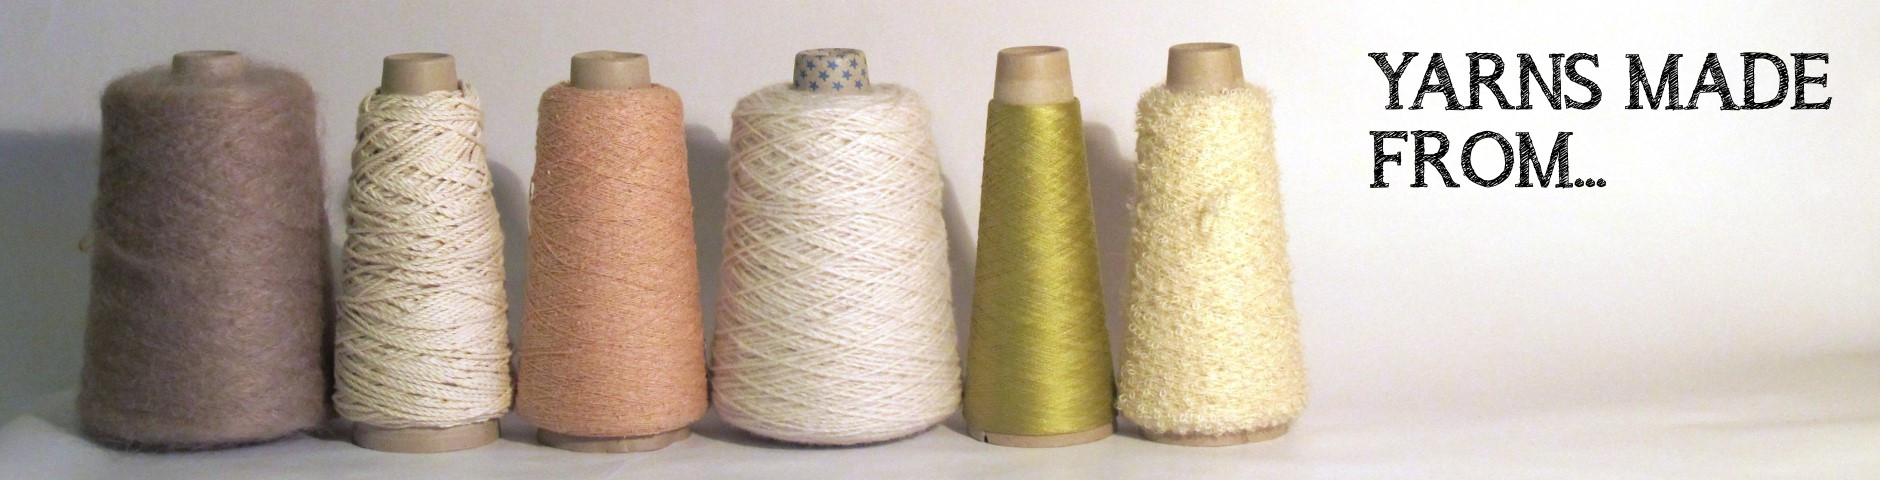 Airedale Yarns - Wool, yarns and fibres for your crafty